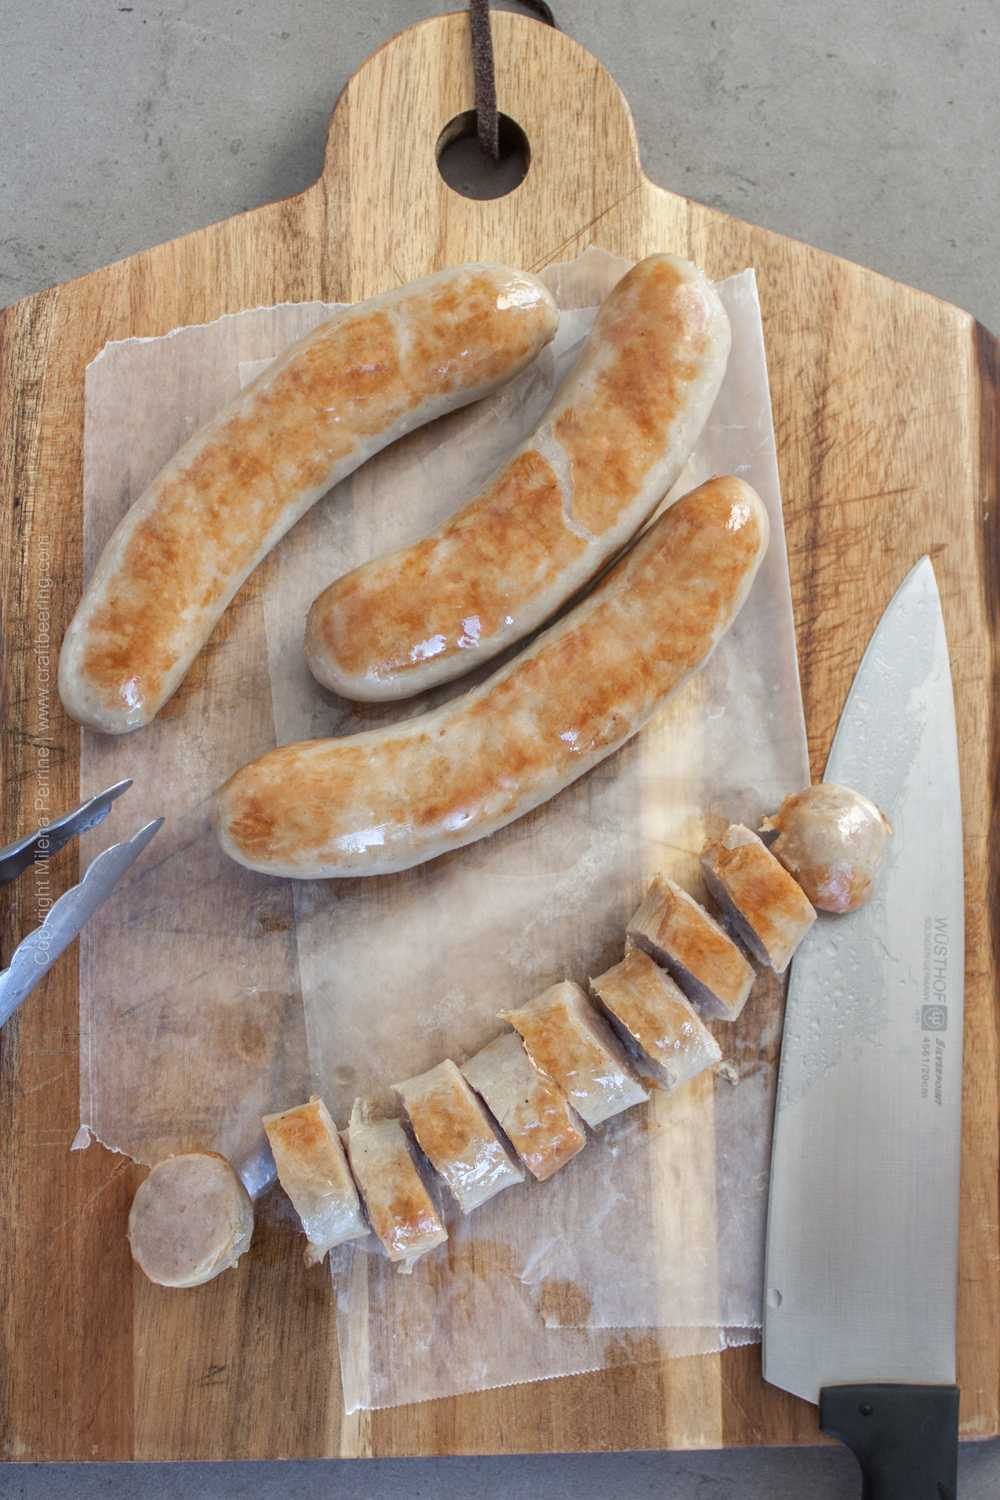 Bratwurst already blistered up from pan-frying, appropriately sliced and ready for curry ketchup